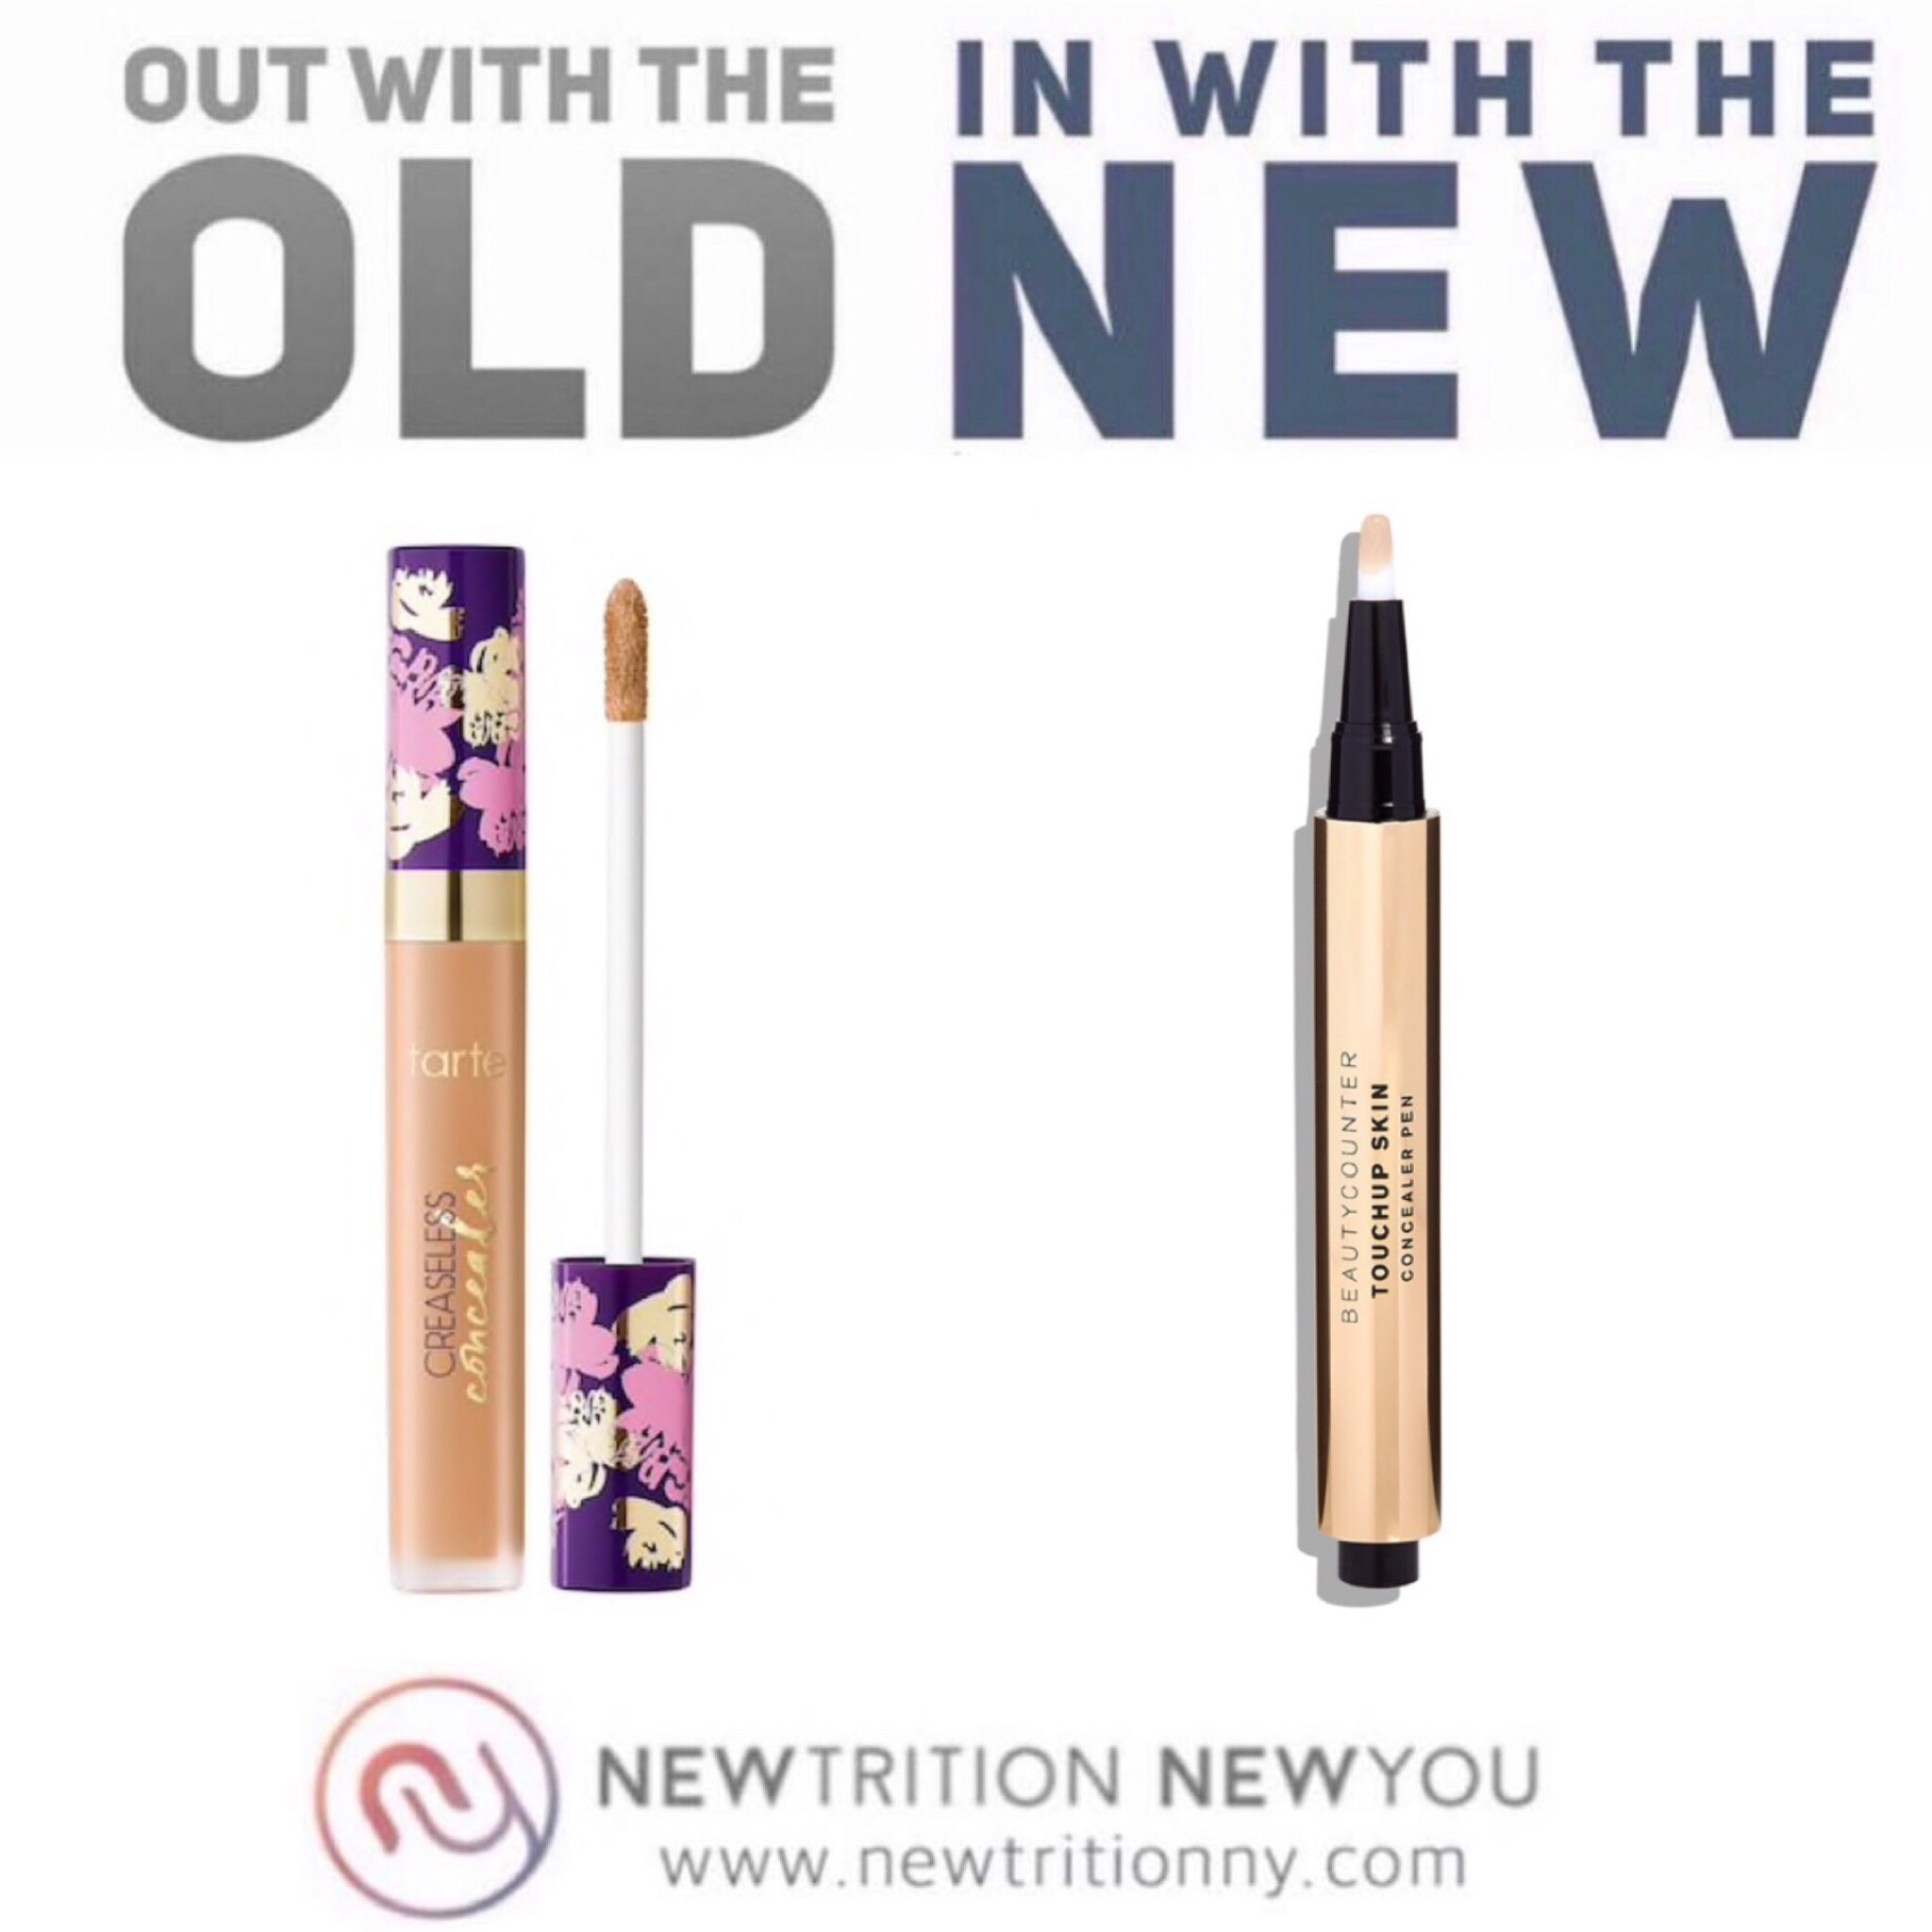 Ditch and Switch Tarte Concealer for Beautycounter Concealer